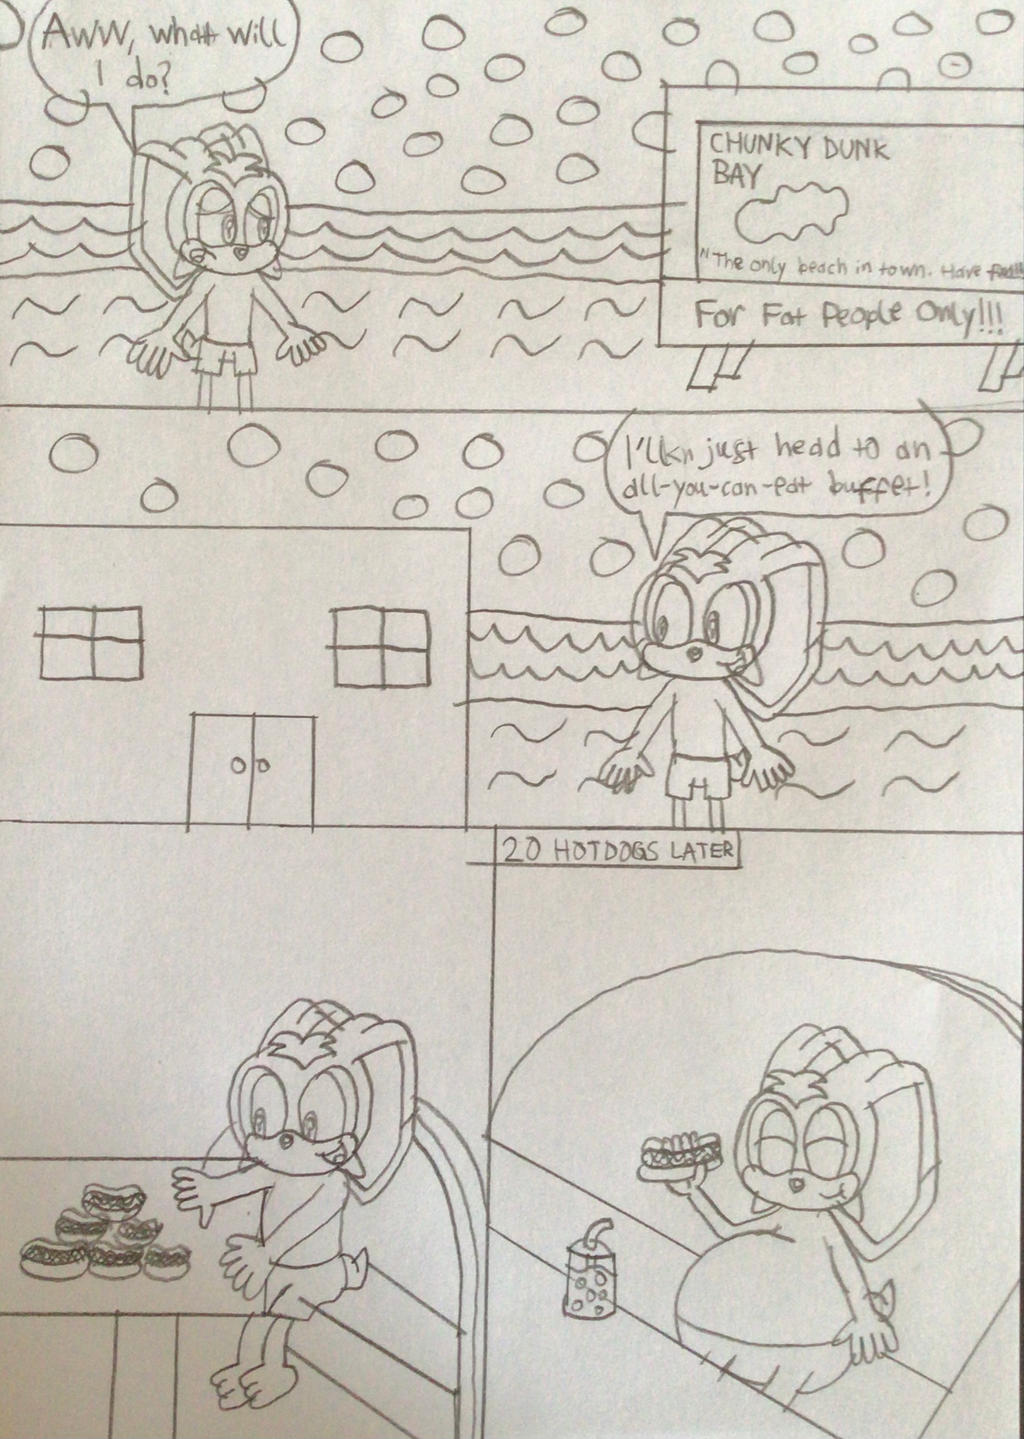 Crispy the Rabbit at Chunky Dunk Bay page 1